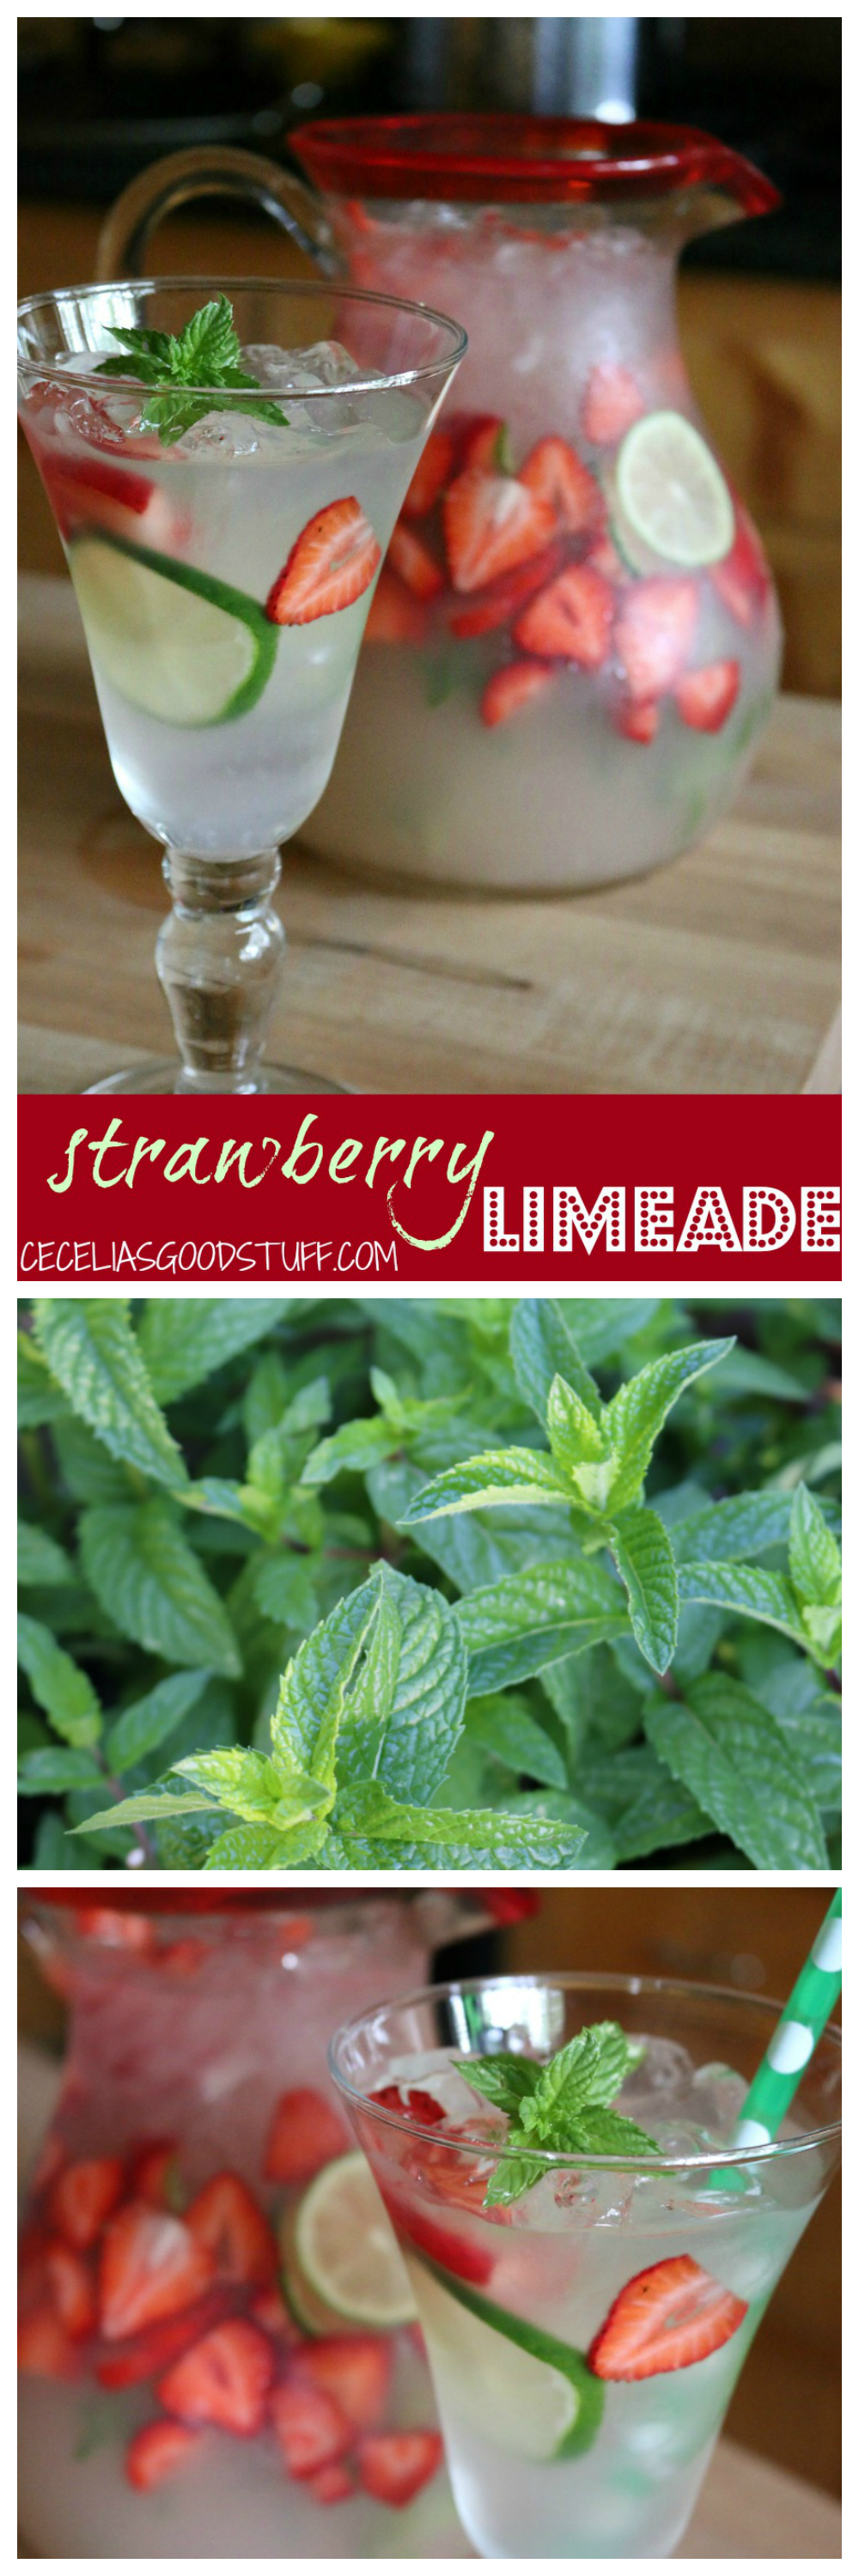 Strawberry Limeade | CeceliasGoodStuff.com | Good Food for Good People